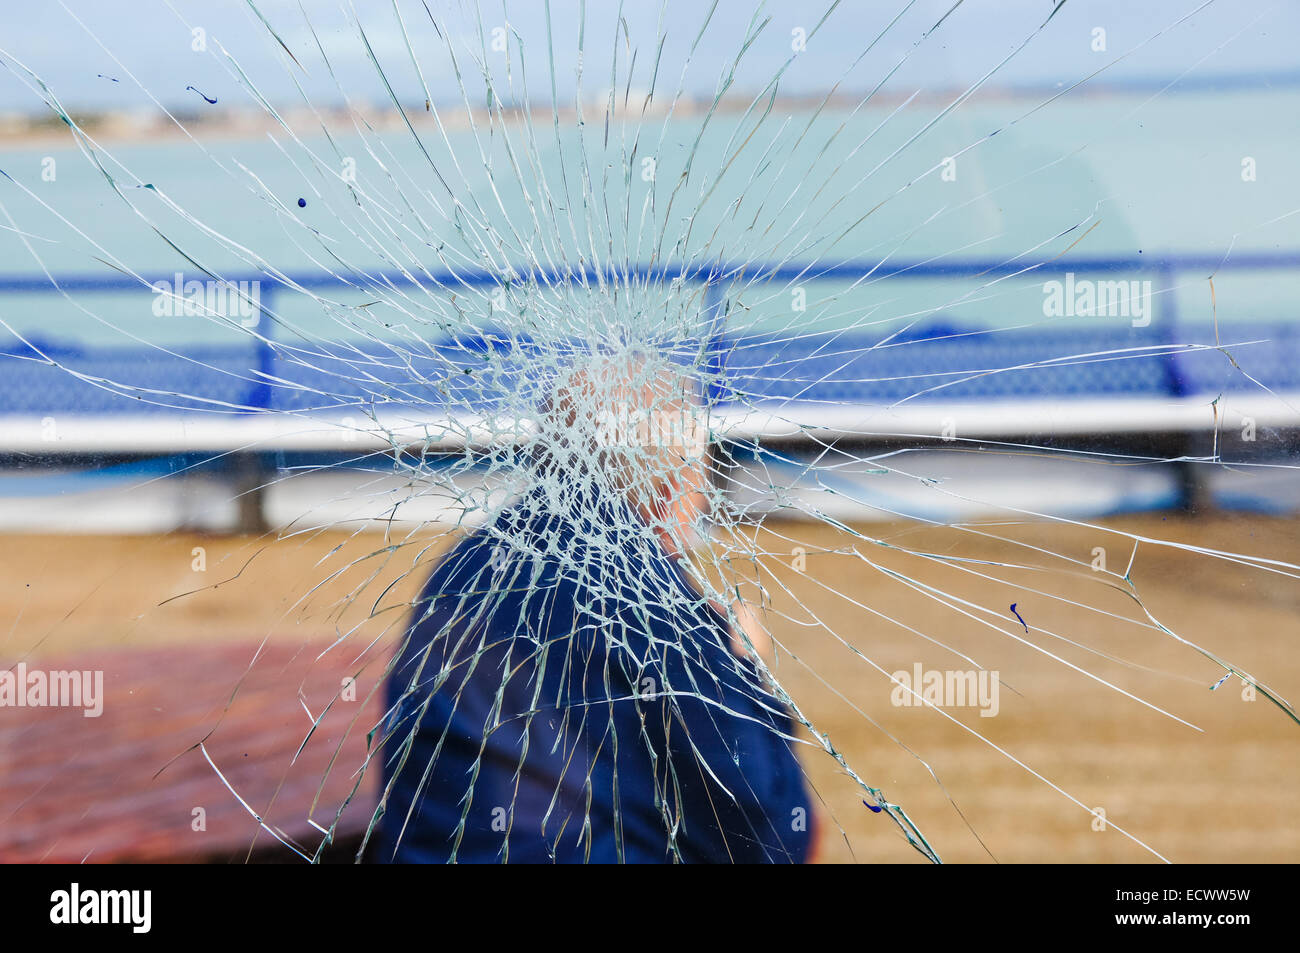 old man sitting behind the window with cracked glass, conceptual image for aging process - Stock Image